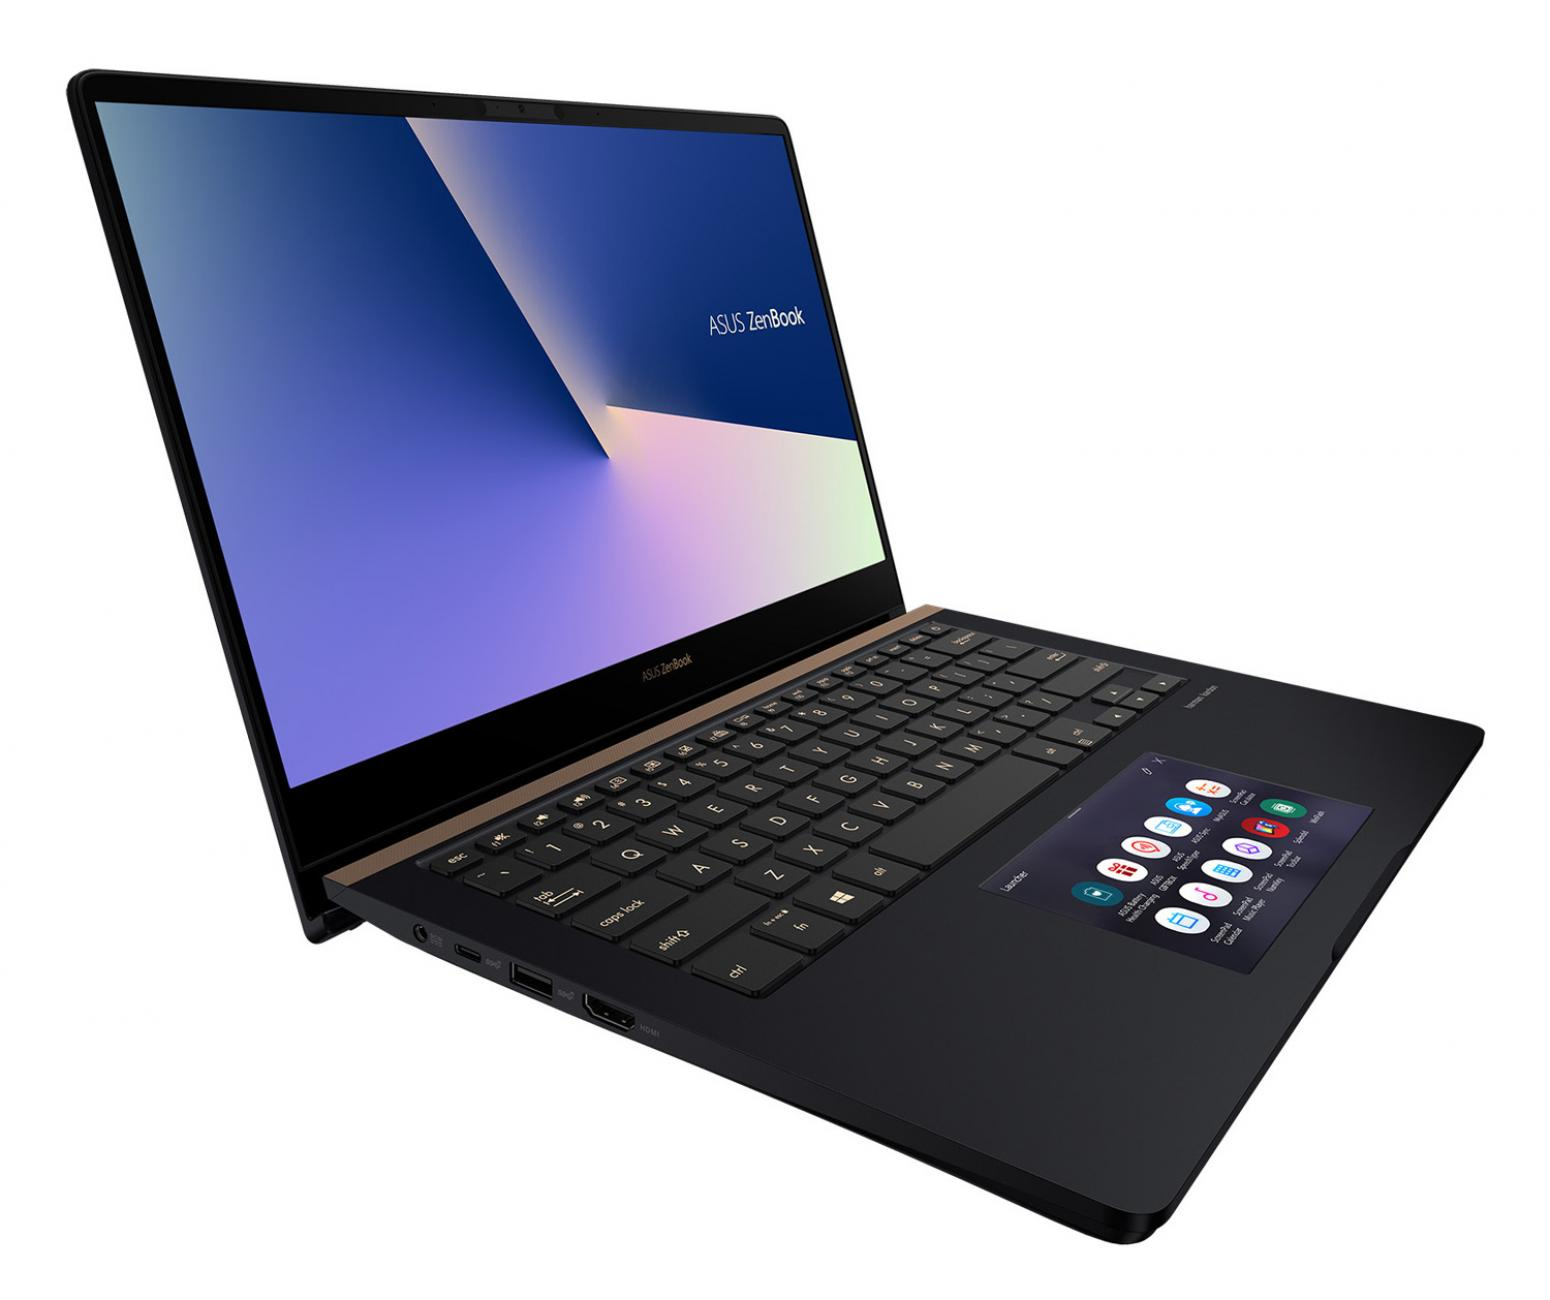 Image du PC portable Asus ZenBook Pro UX480FD-BE068T - GTX 1050 Max-Q, ScreenPad, Whiskey Lake